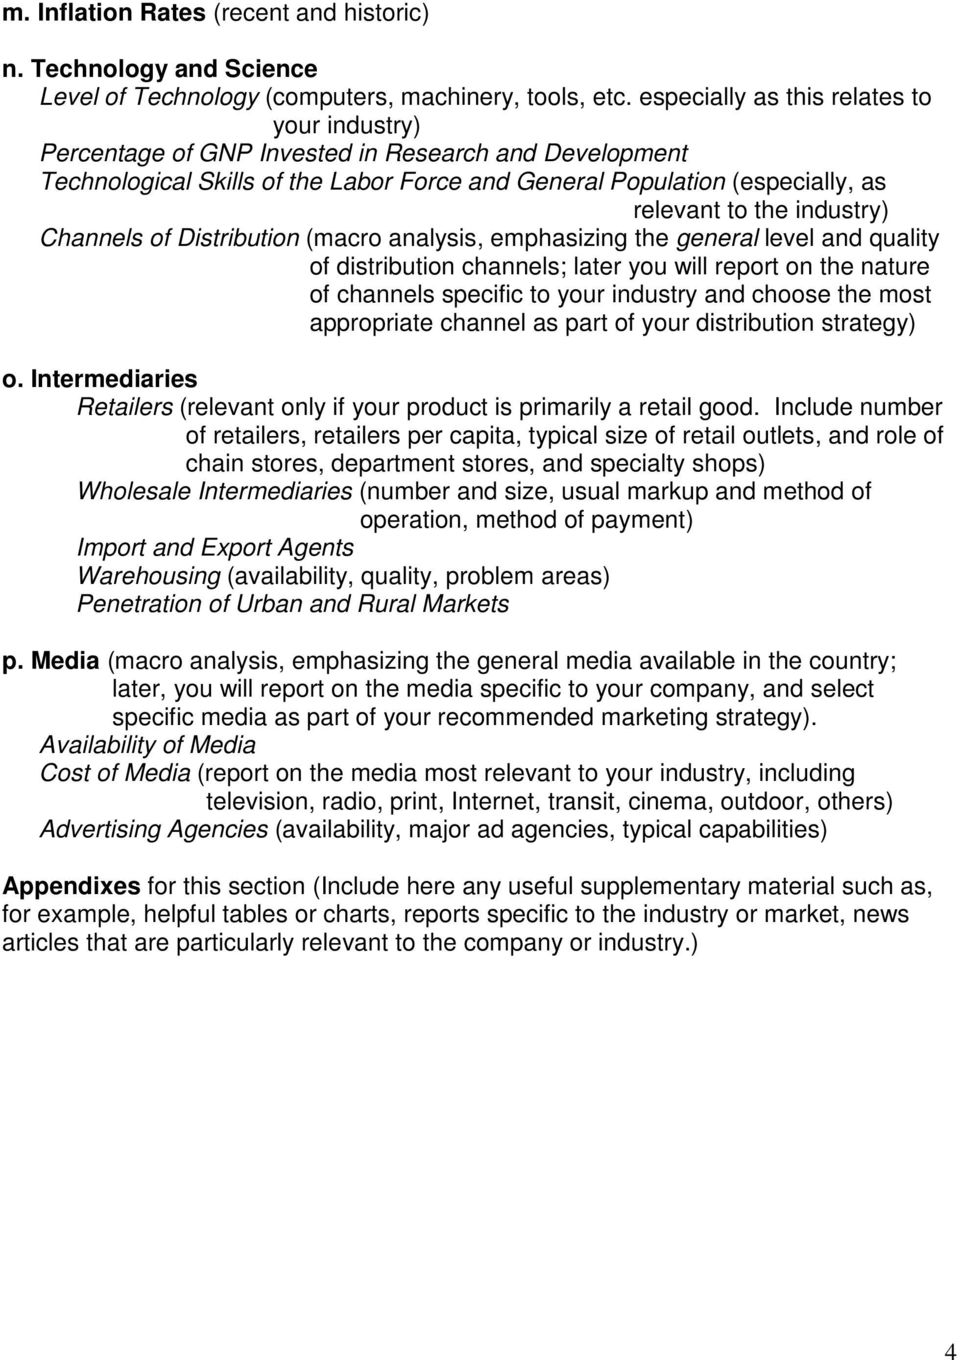 industry) Channels of Distribution (macro analysis, emphasizing the general level and quality of distribution channels; later you will report on the nature of channels specific to your industry and